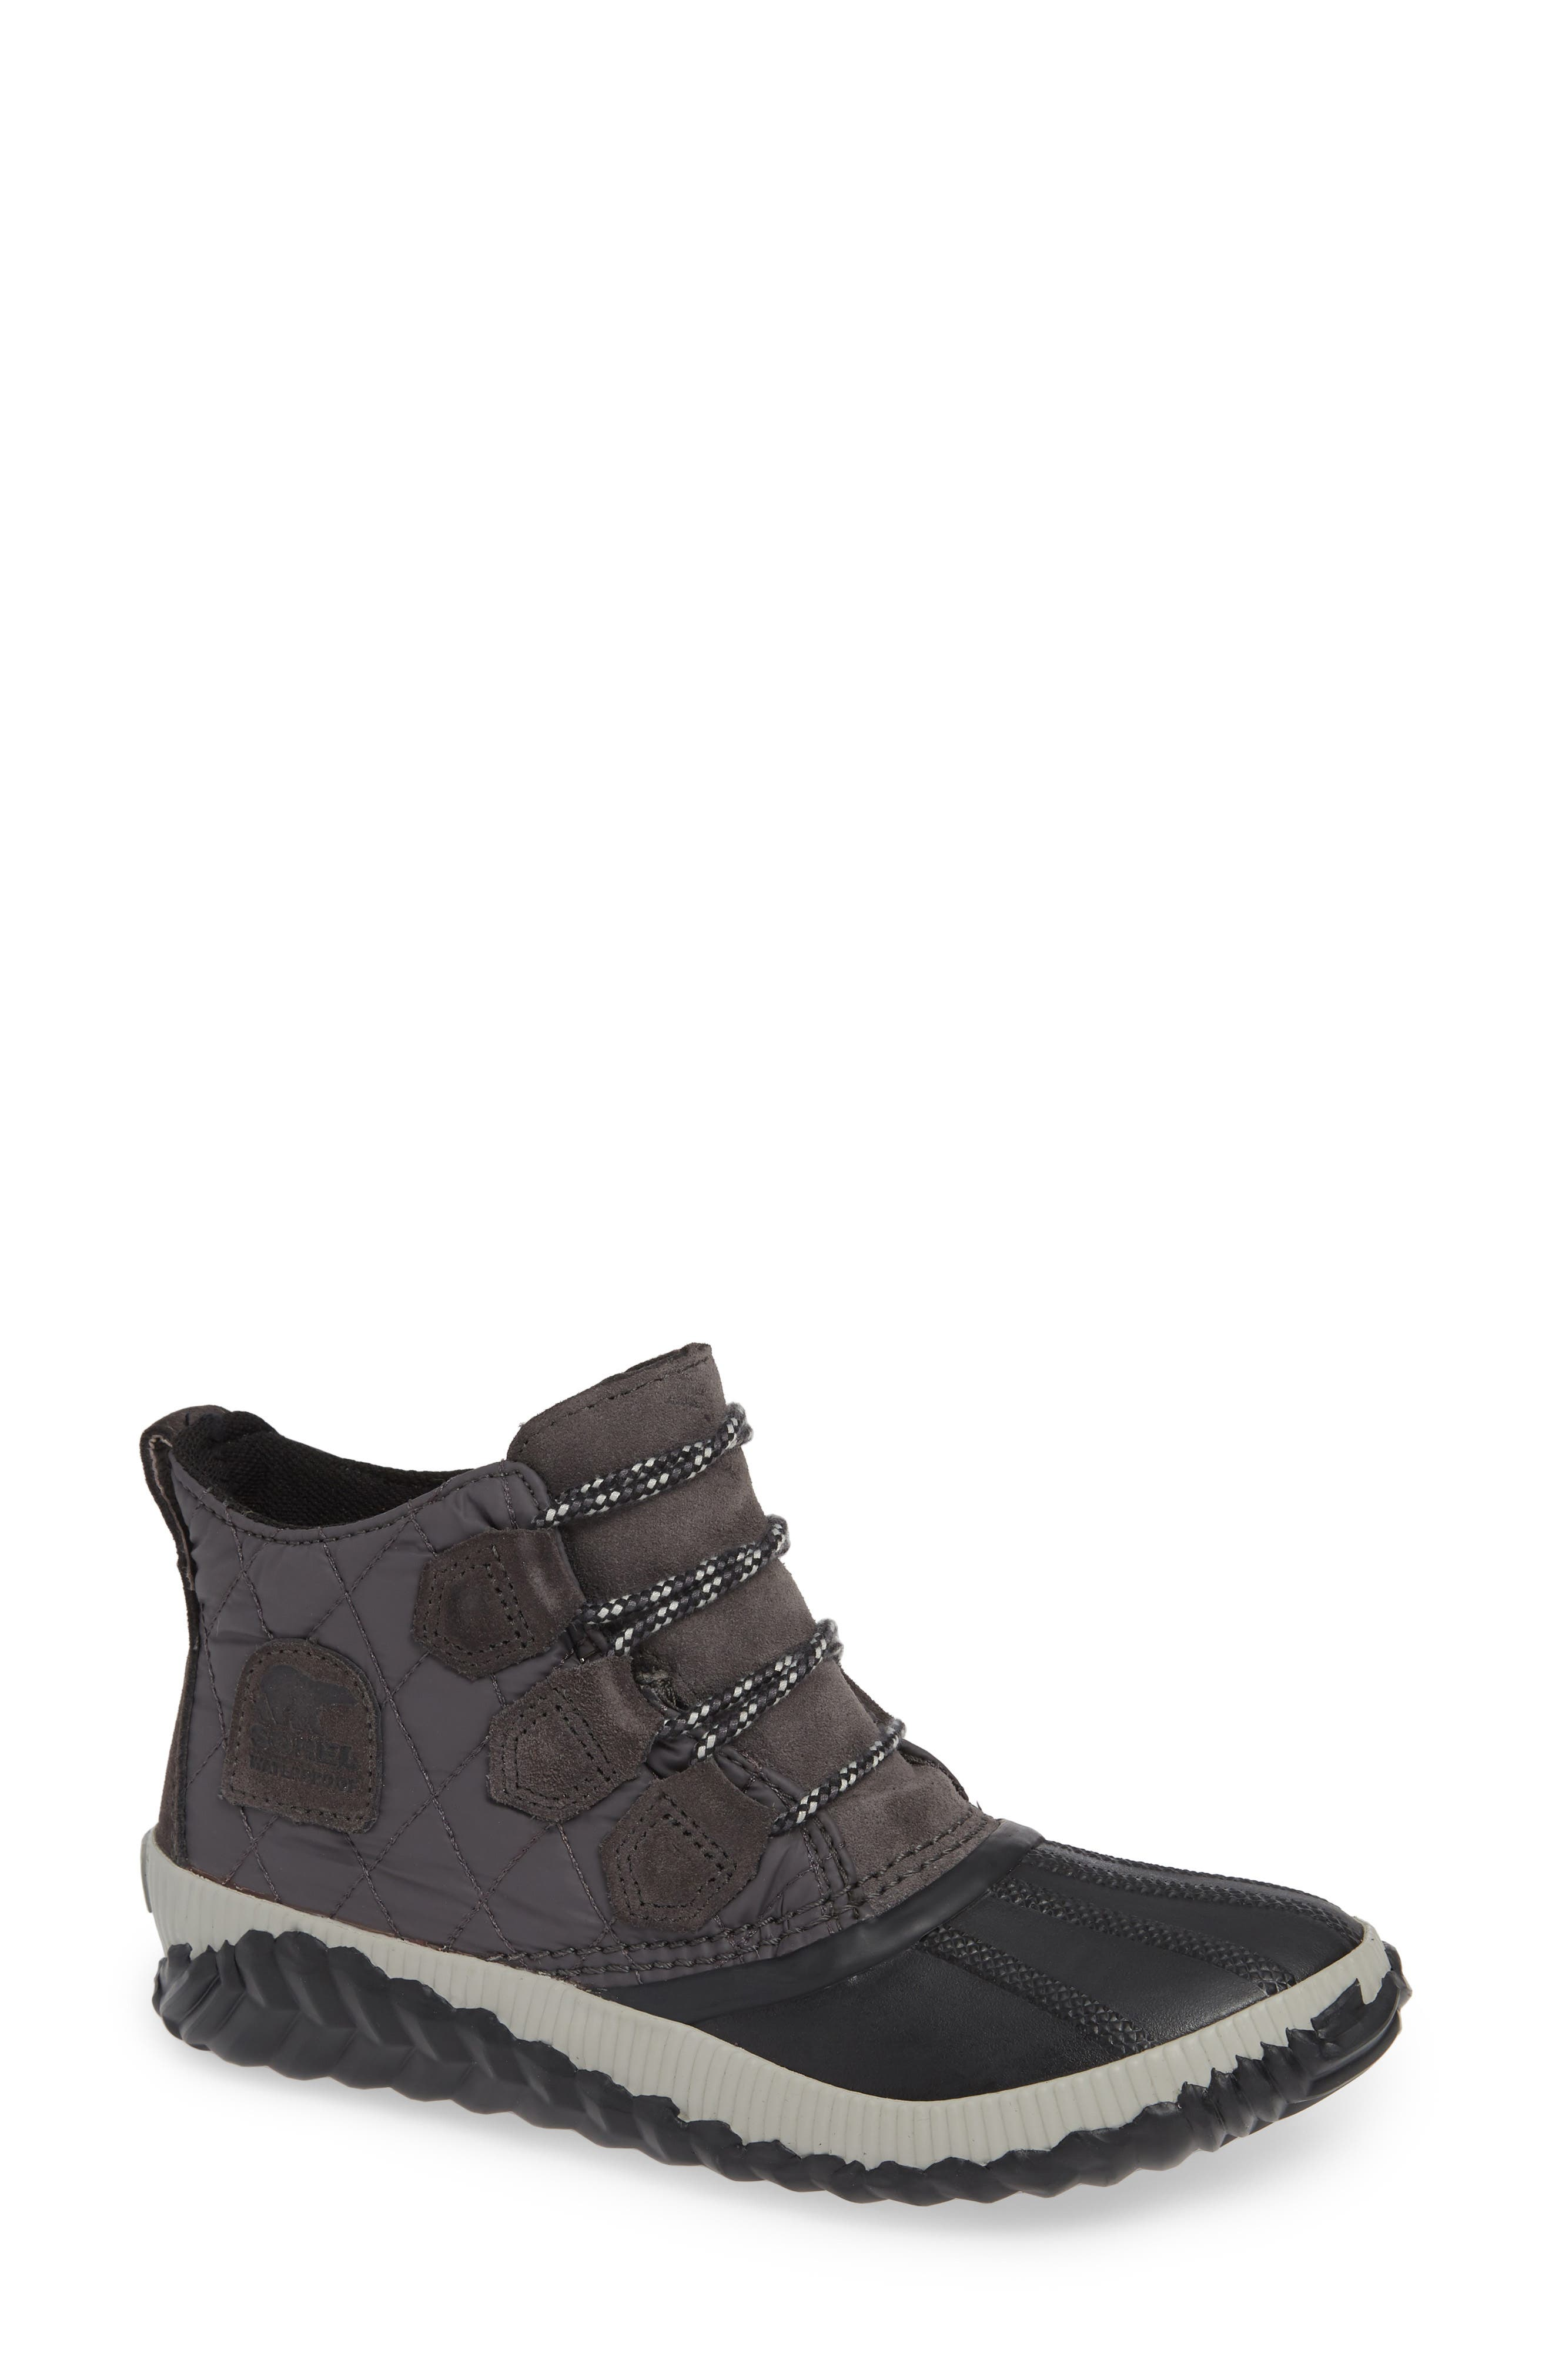 Out N About Plus Camp Waterproof Bootie,                         Main,                         color, SLATE GREY/ BLACK